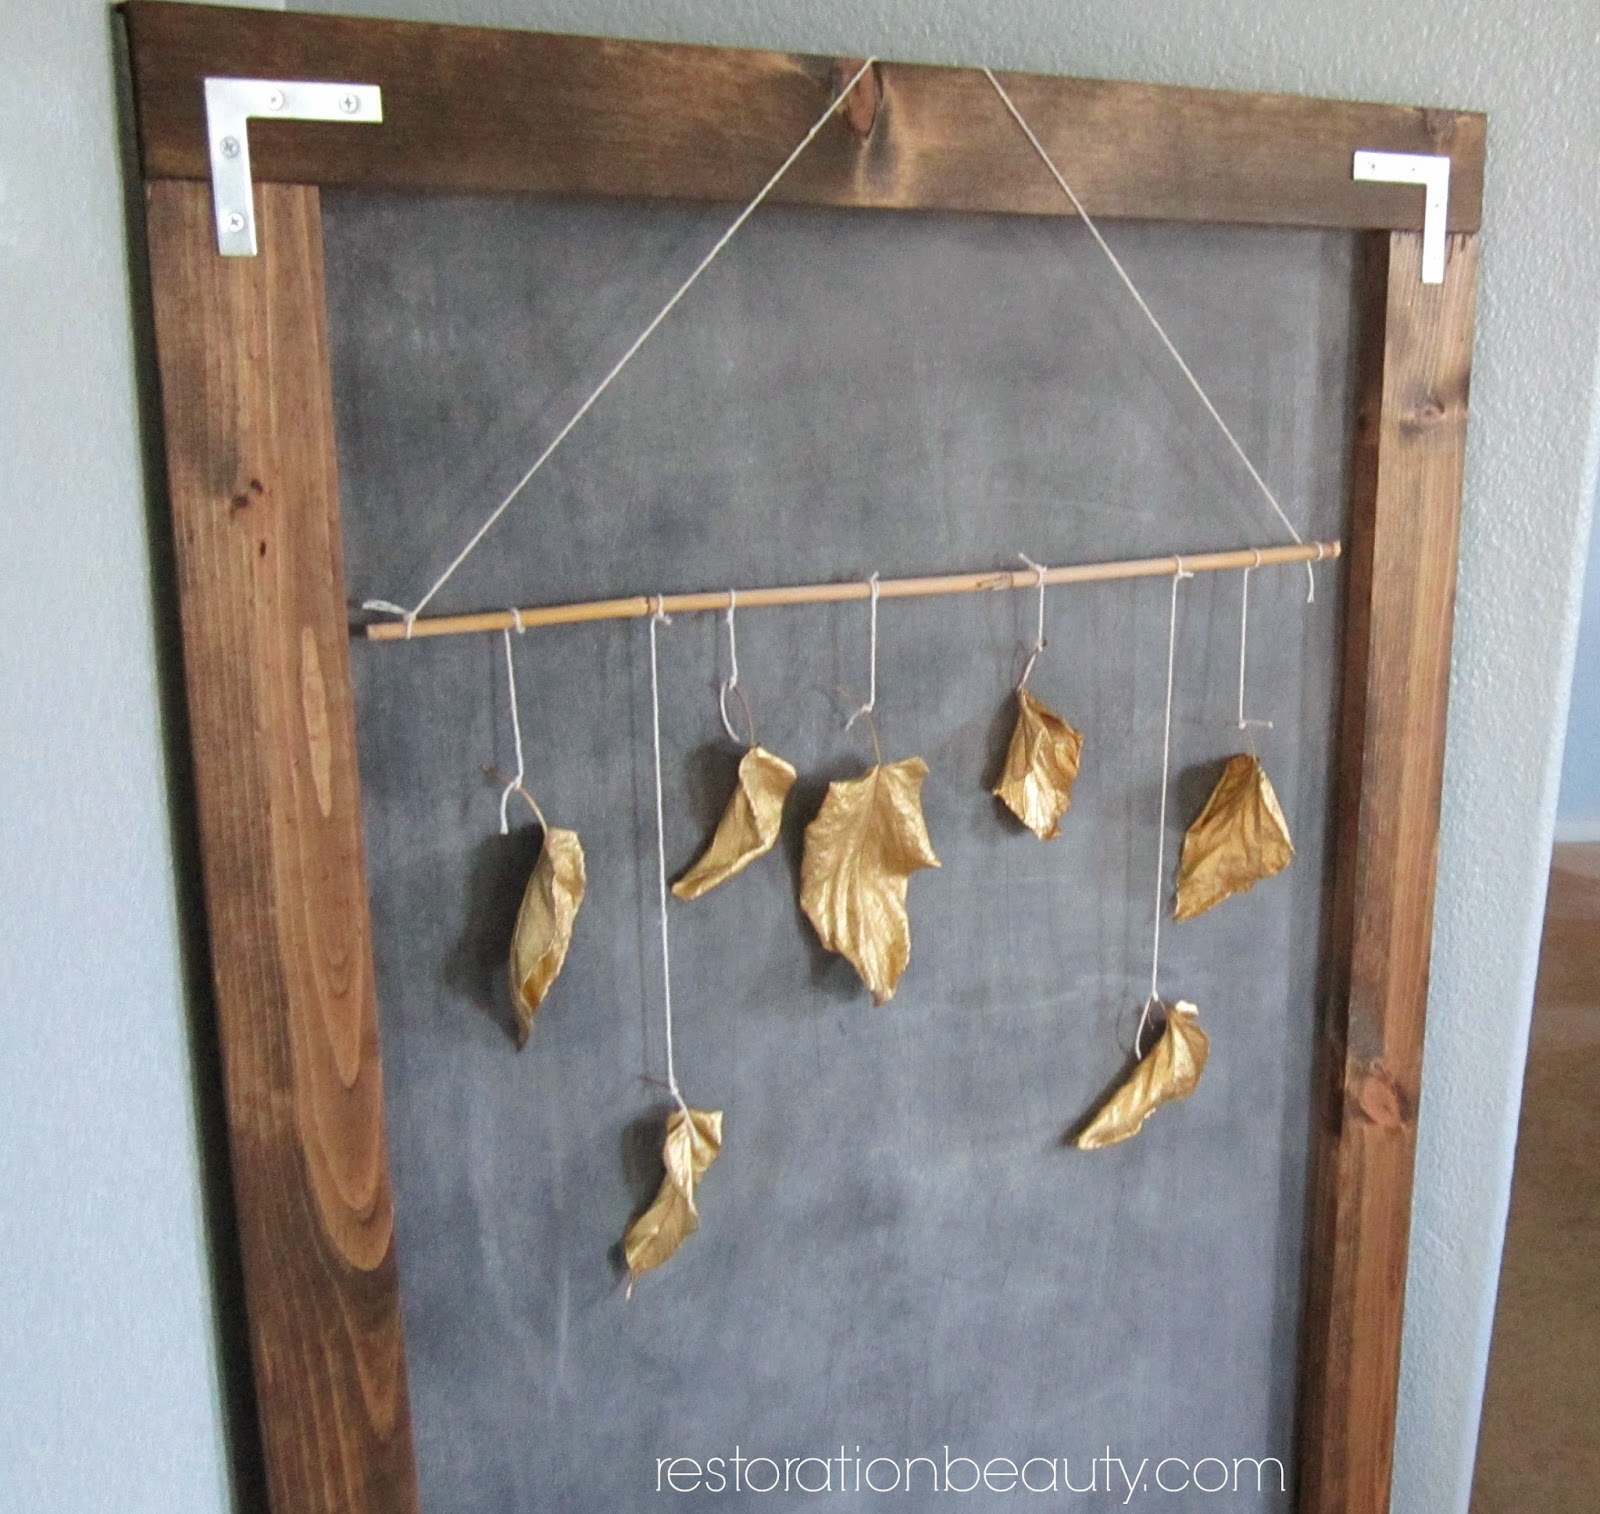 Spray painted gold leaves